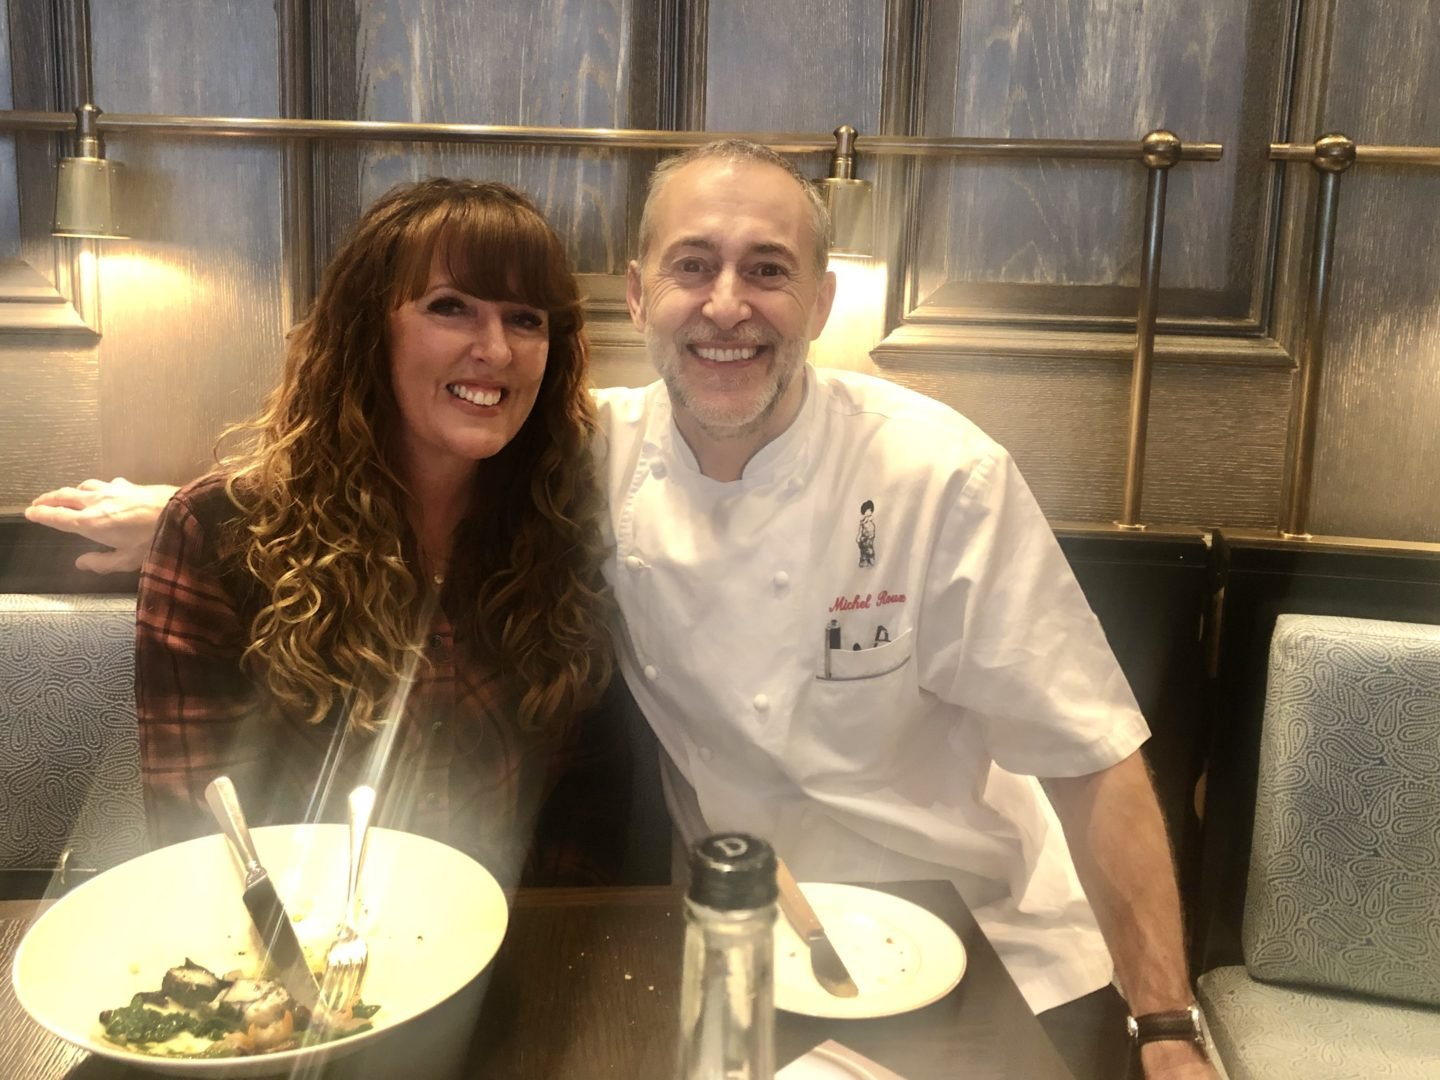 chef-hosted lunch with Michel Roux Jr at The Landau. The London Restaurant festival